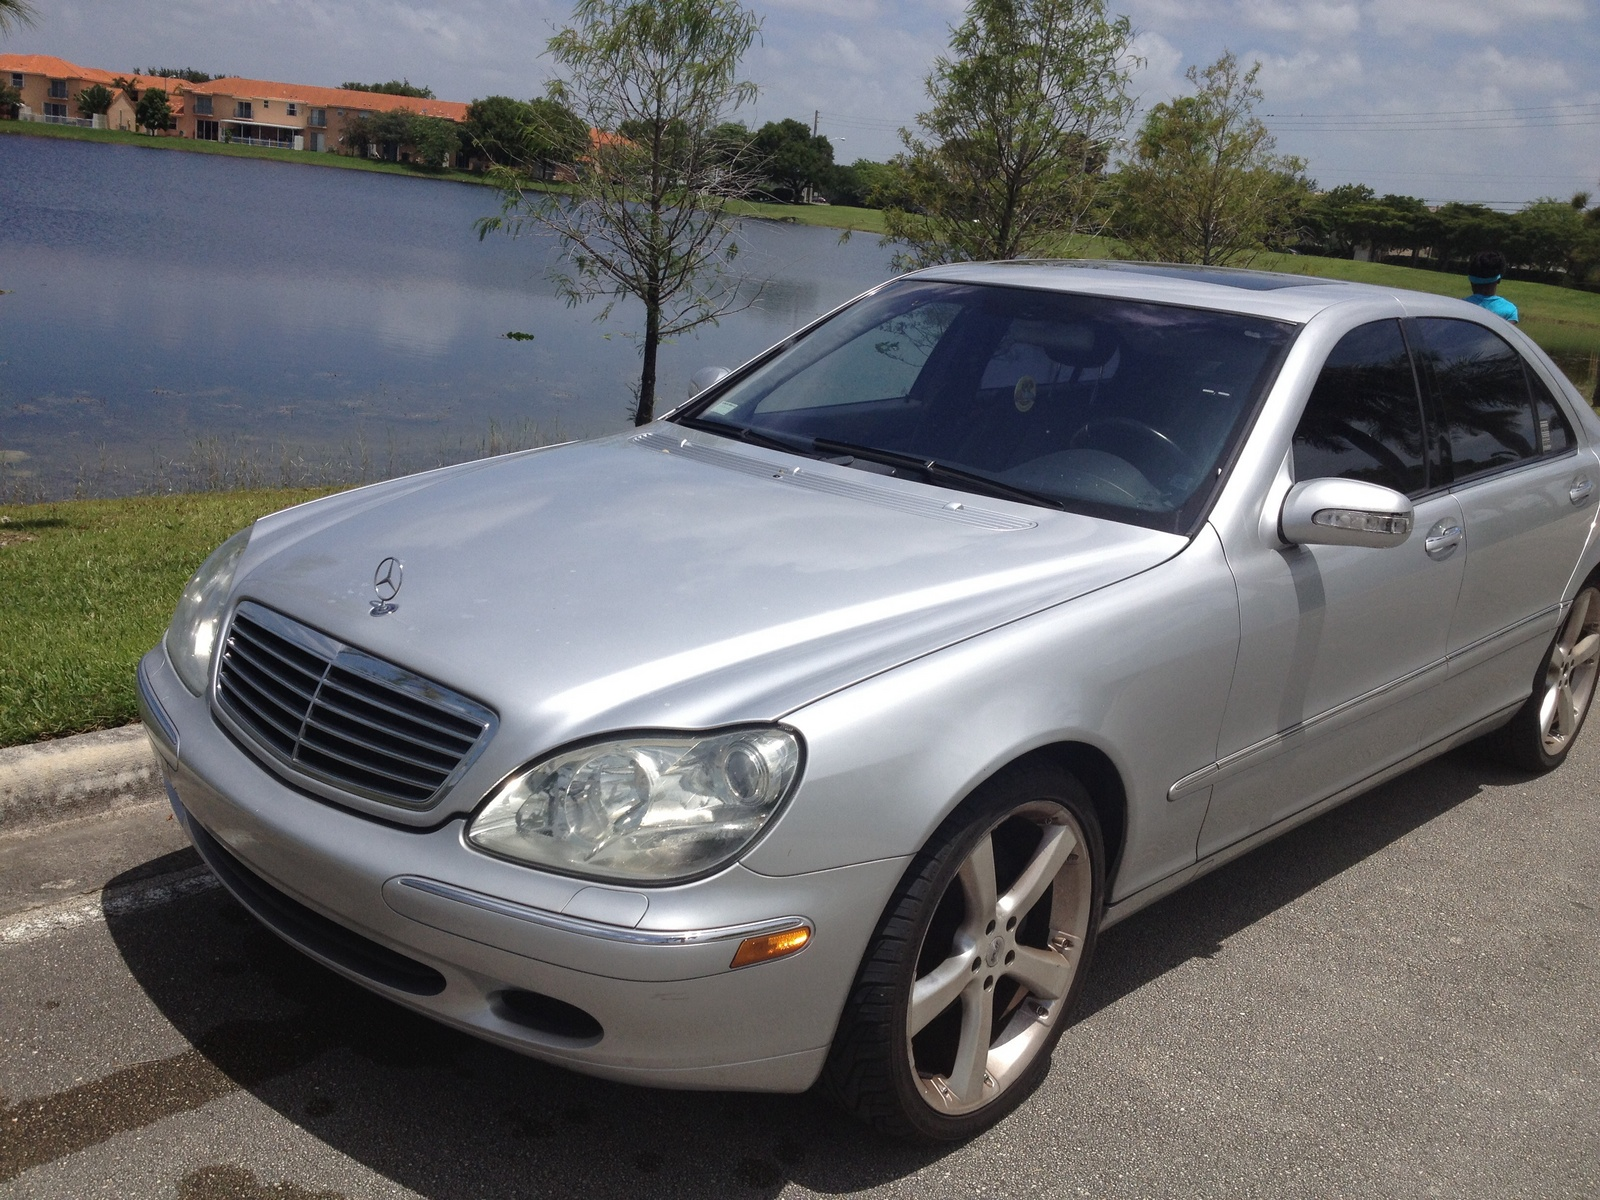 2001 mercedes benz s class pictures cargurus for Mercedes benz 07